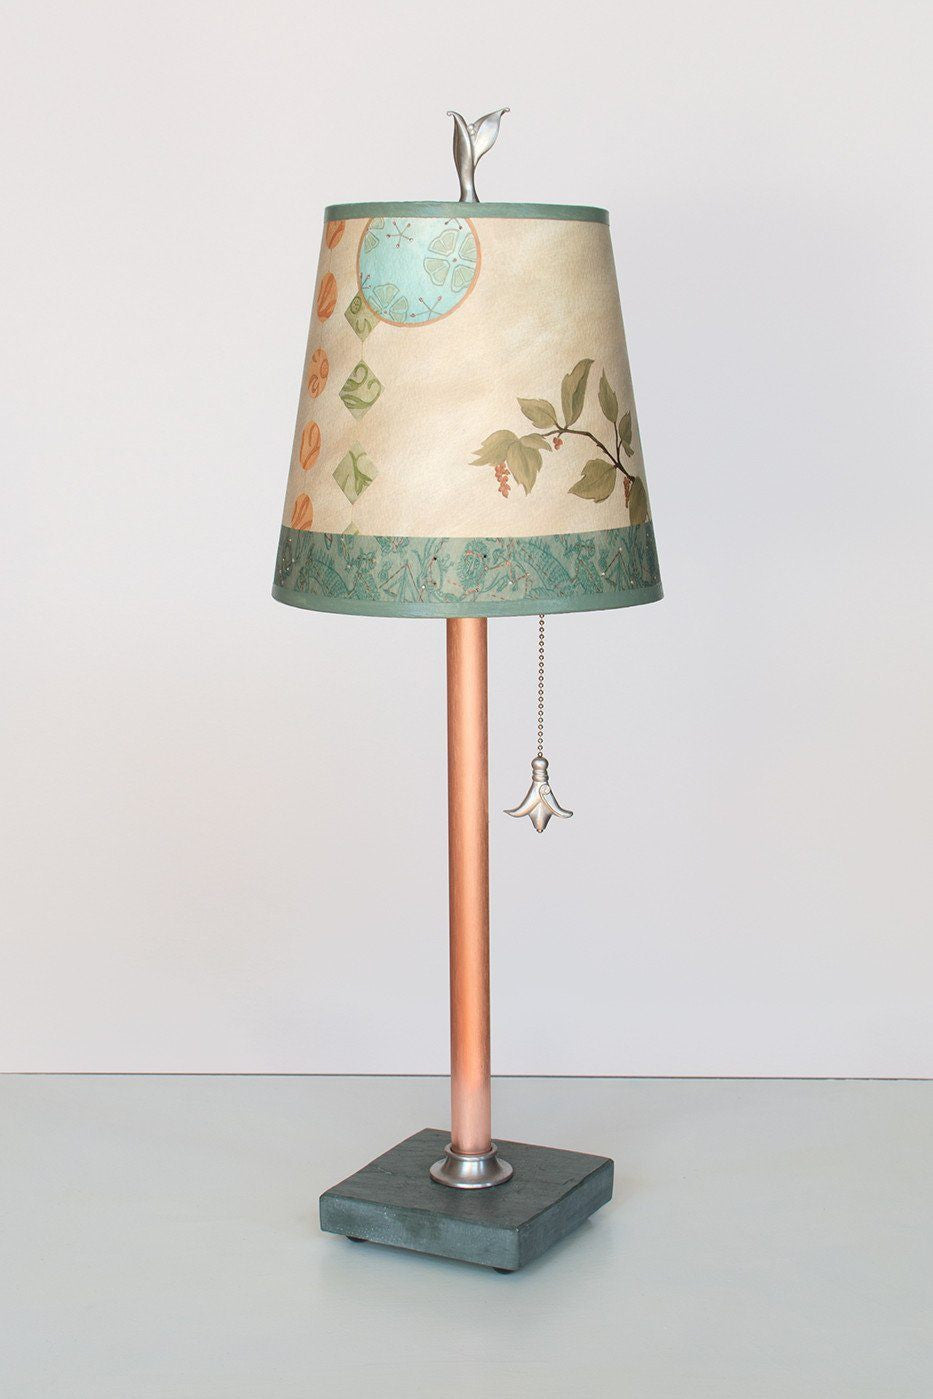 Copper Table Lamp on Vermont Slate Base with Small Drum Shade in Celestial Leaf Lit